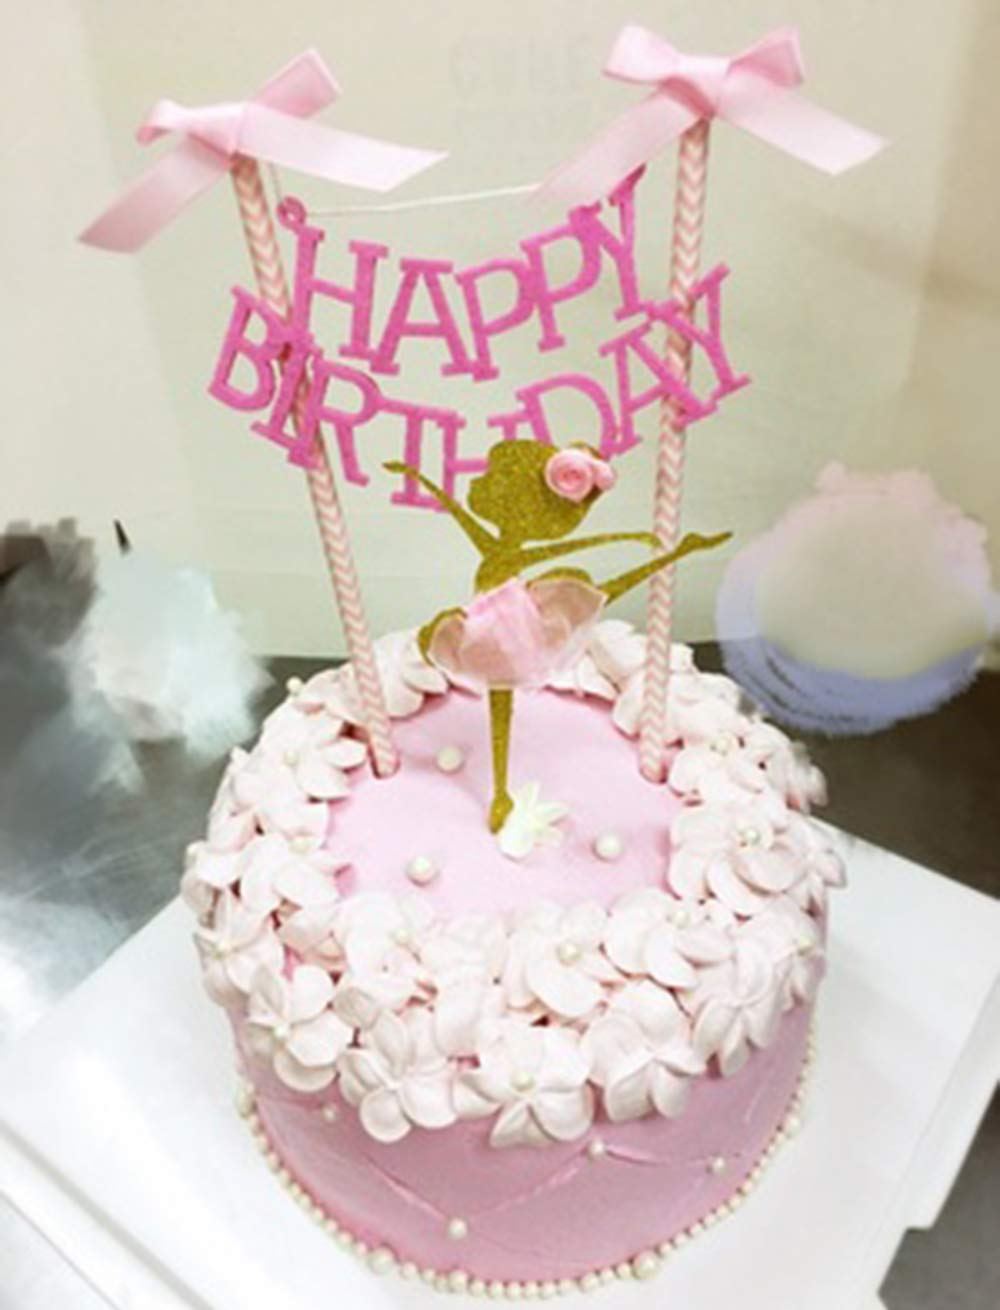 Soccerene HAPPY BIRTHDAY Cake Bunting Topper With Pink Bows And Straws Gold Glitter Ballerina Dress Set Of 2 Assembled Already